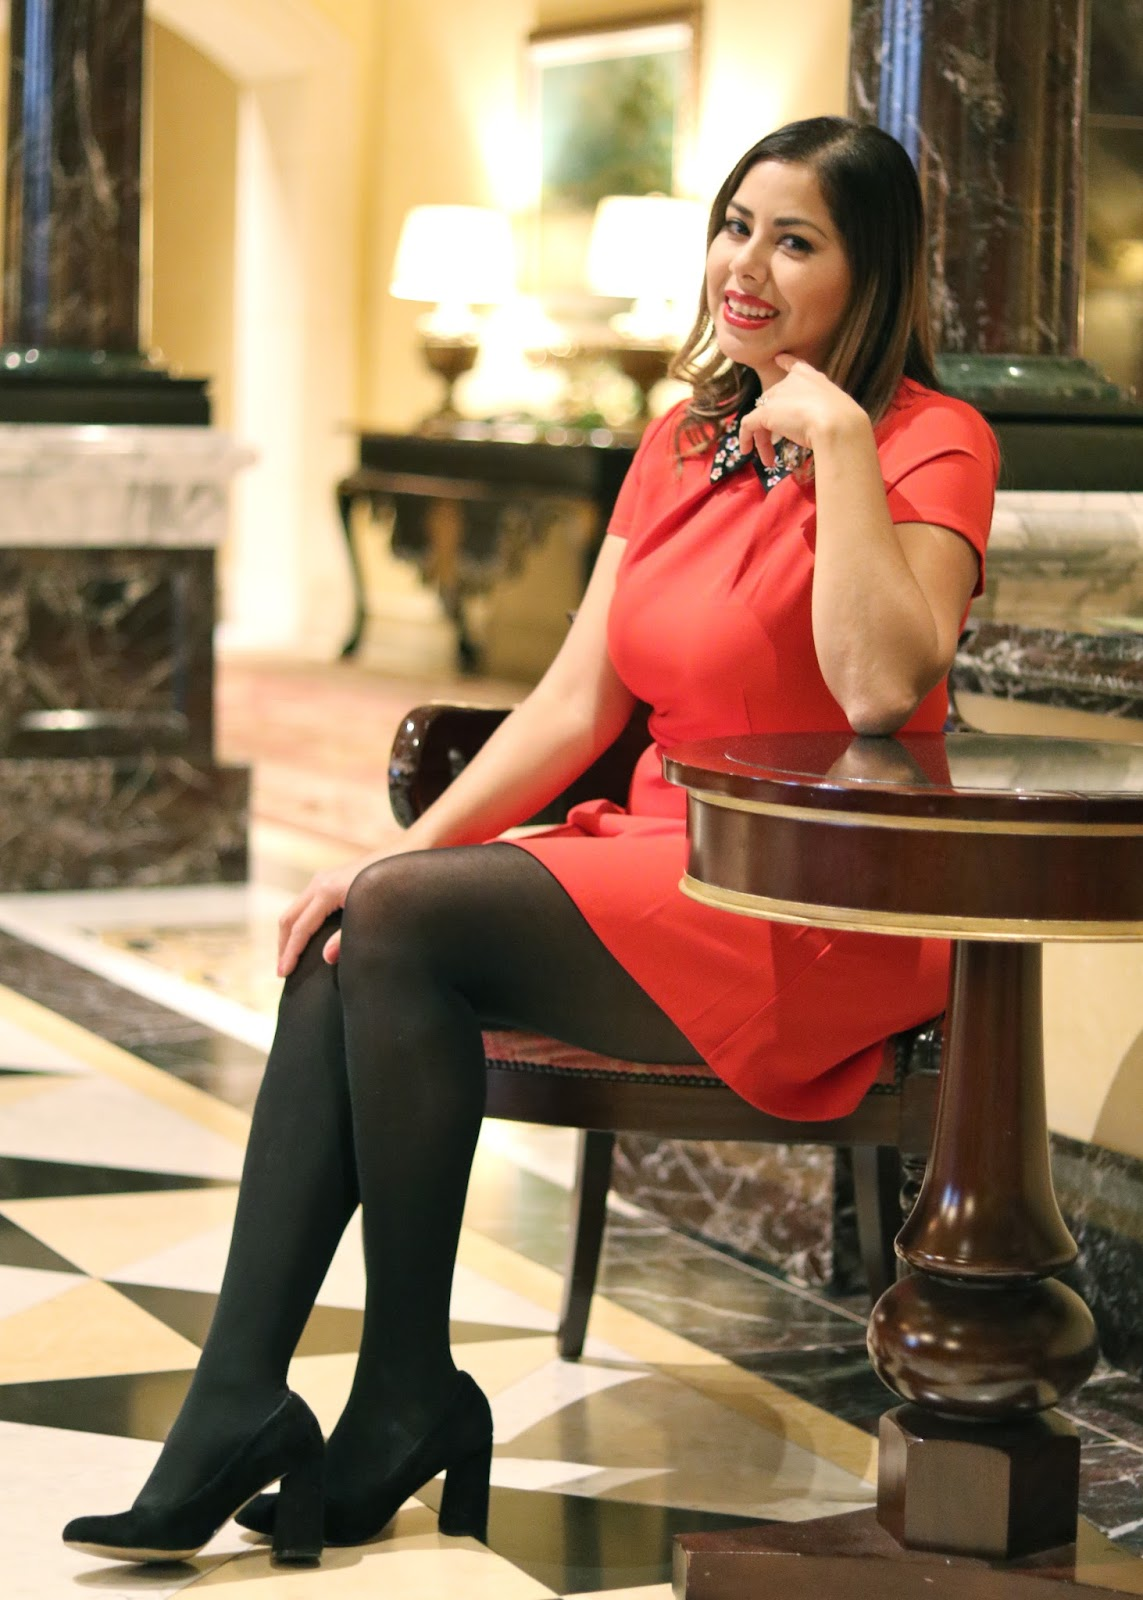 Red Dress for the Holidays, Red Dress for Christmas, San Diego Lifestyle Blogger